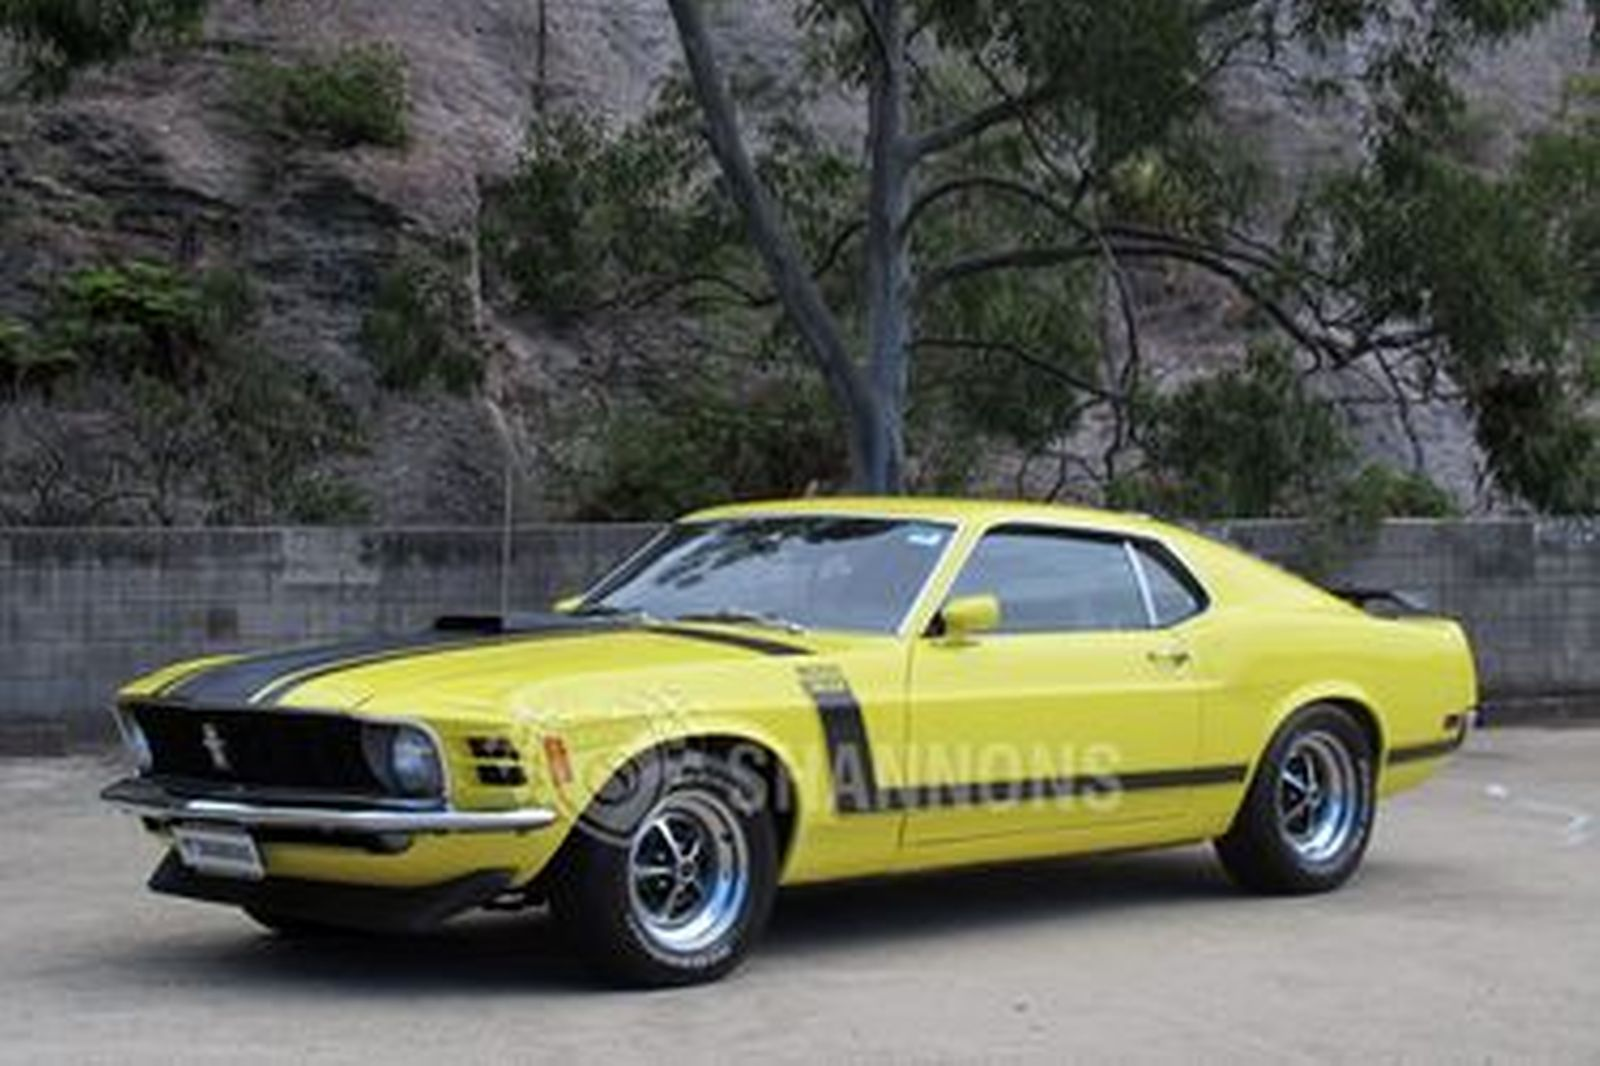 Ford Mustang Boss 302 Fastback Lhd Amended Auctions